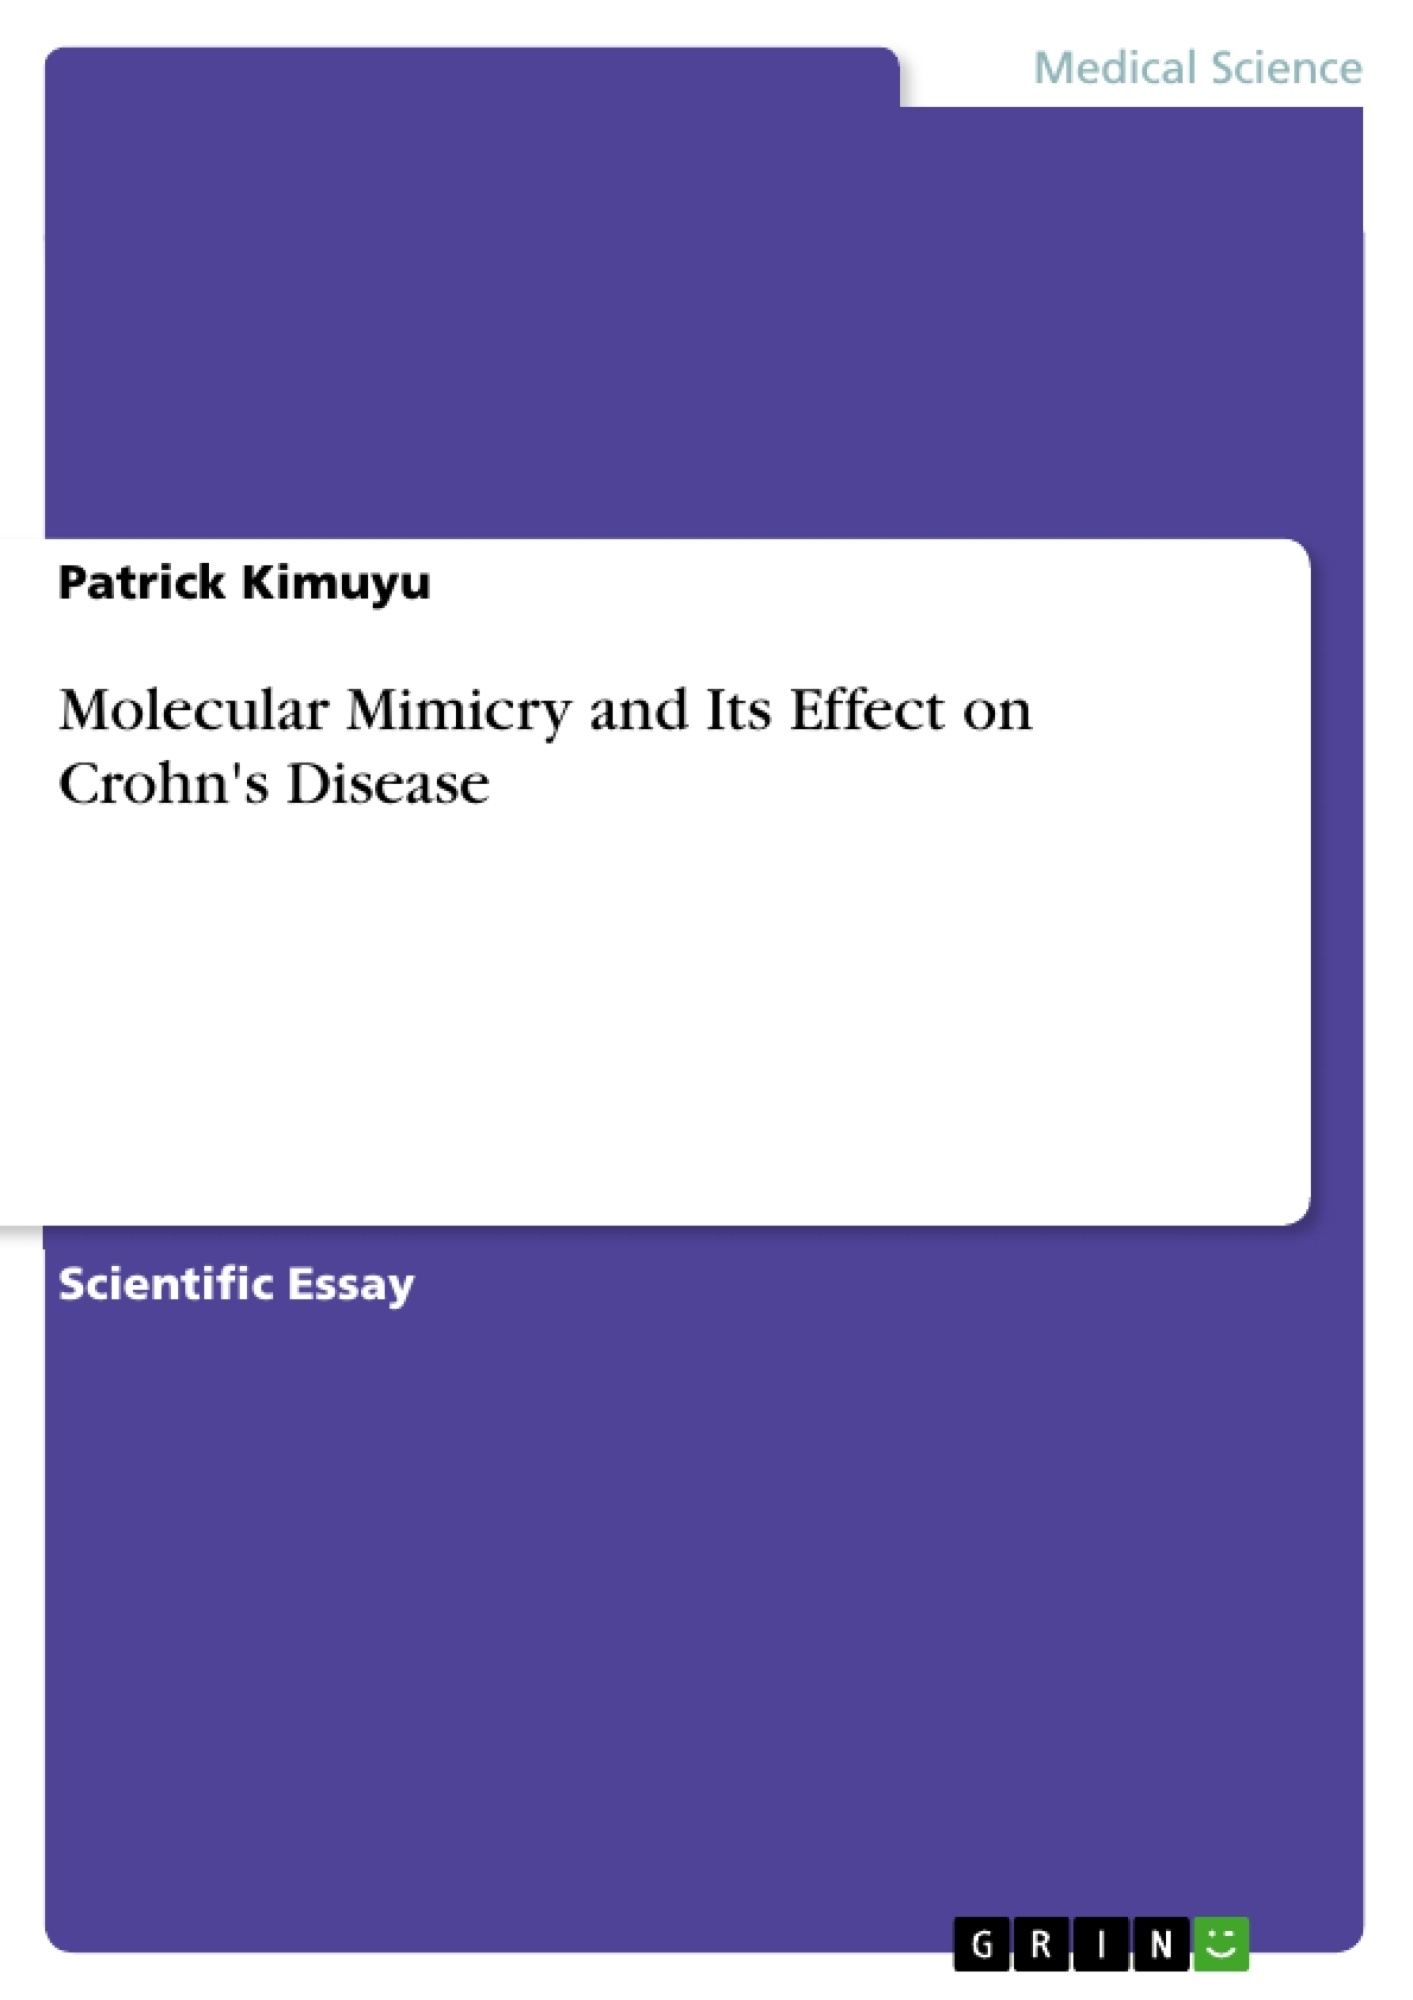 Title: Molecular Mimicry and Its Effect on Crohn's Disease